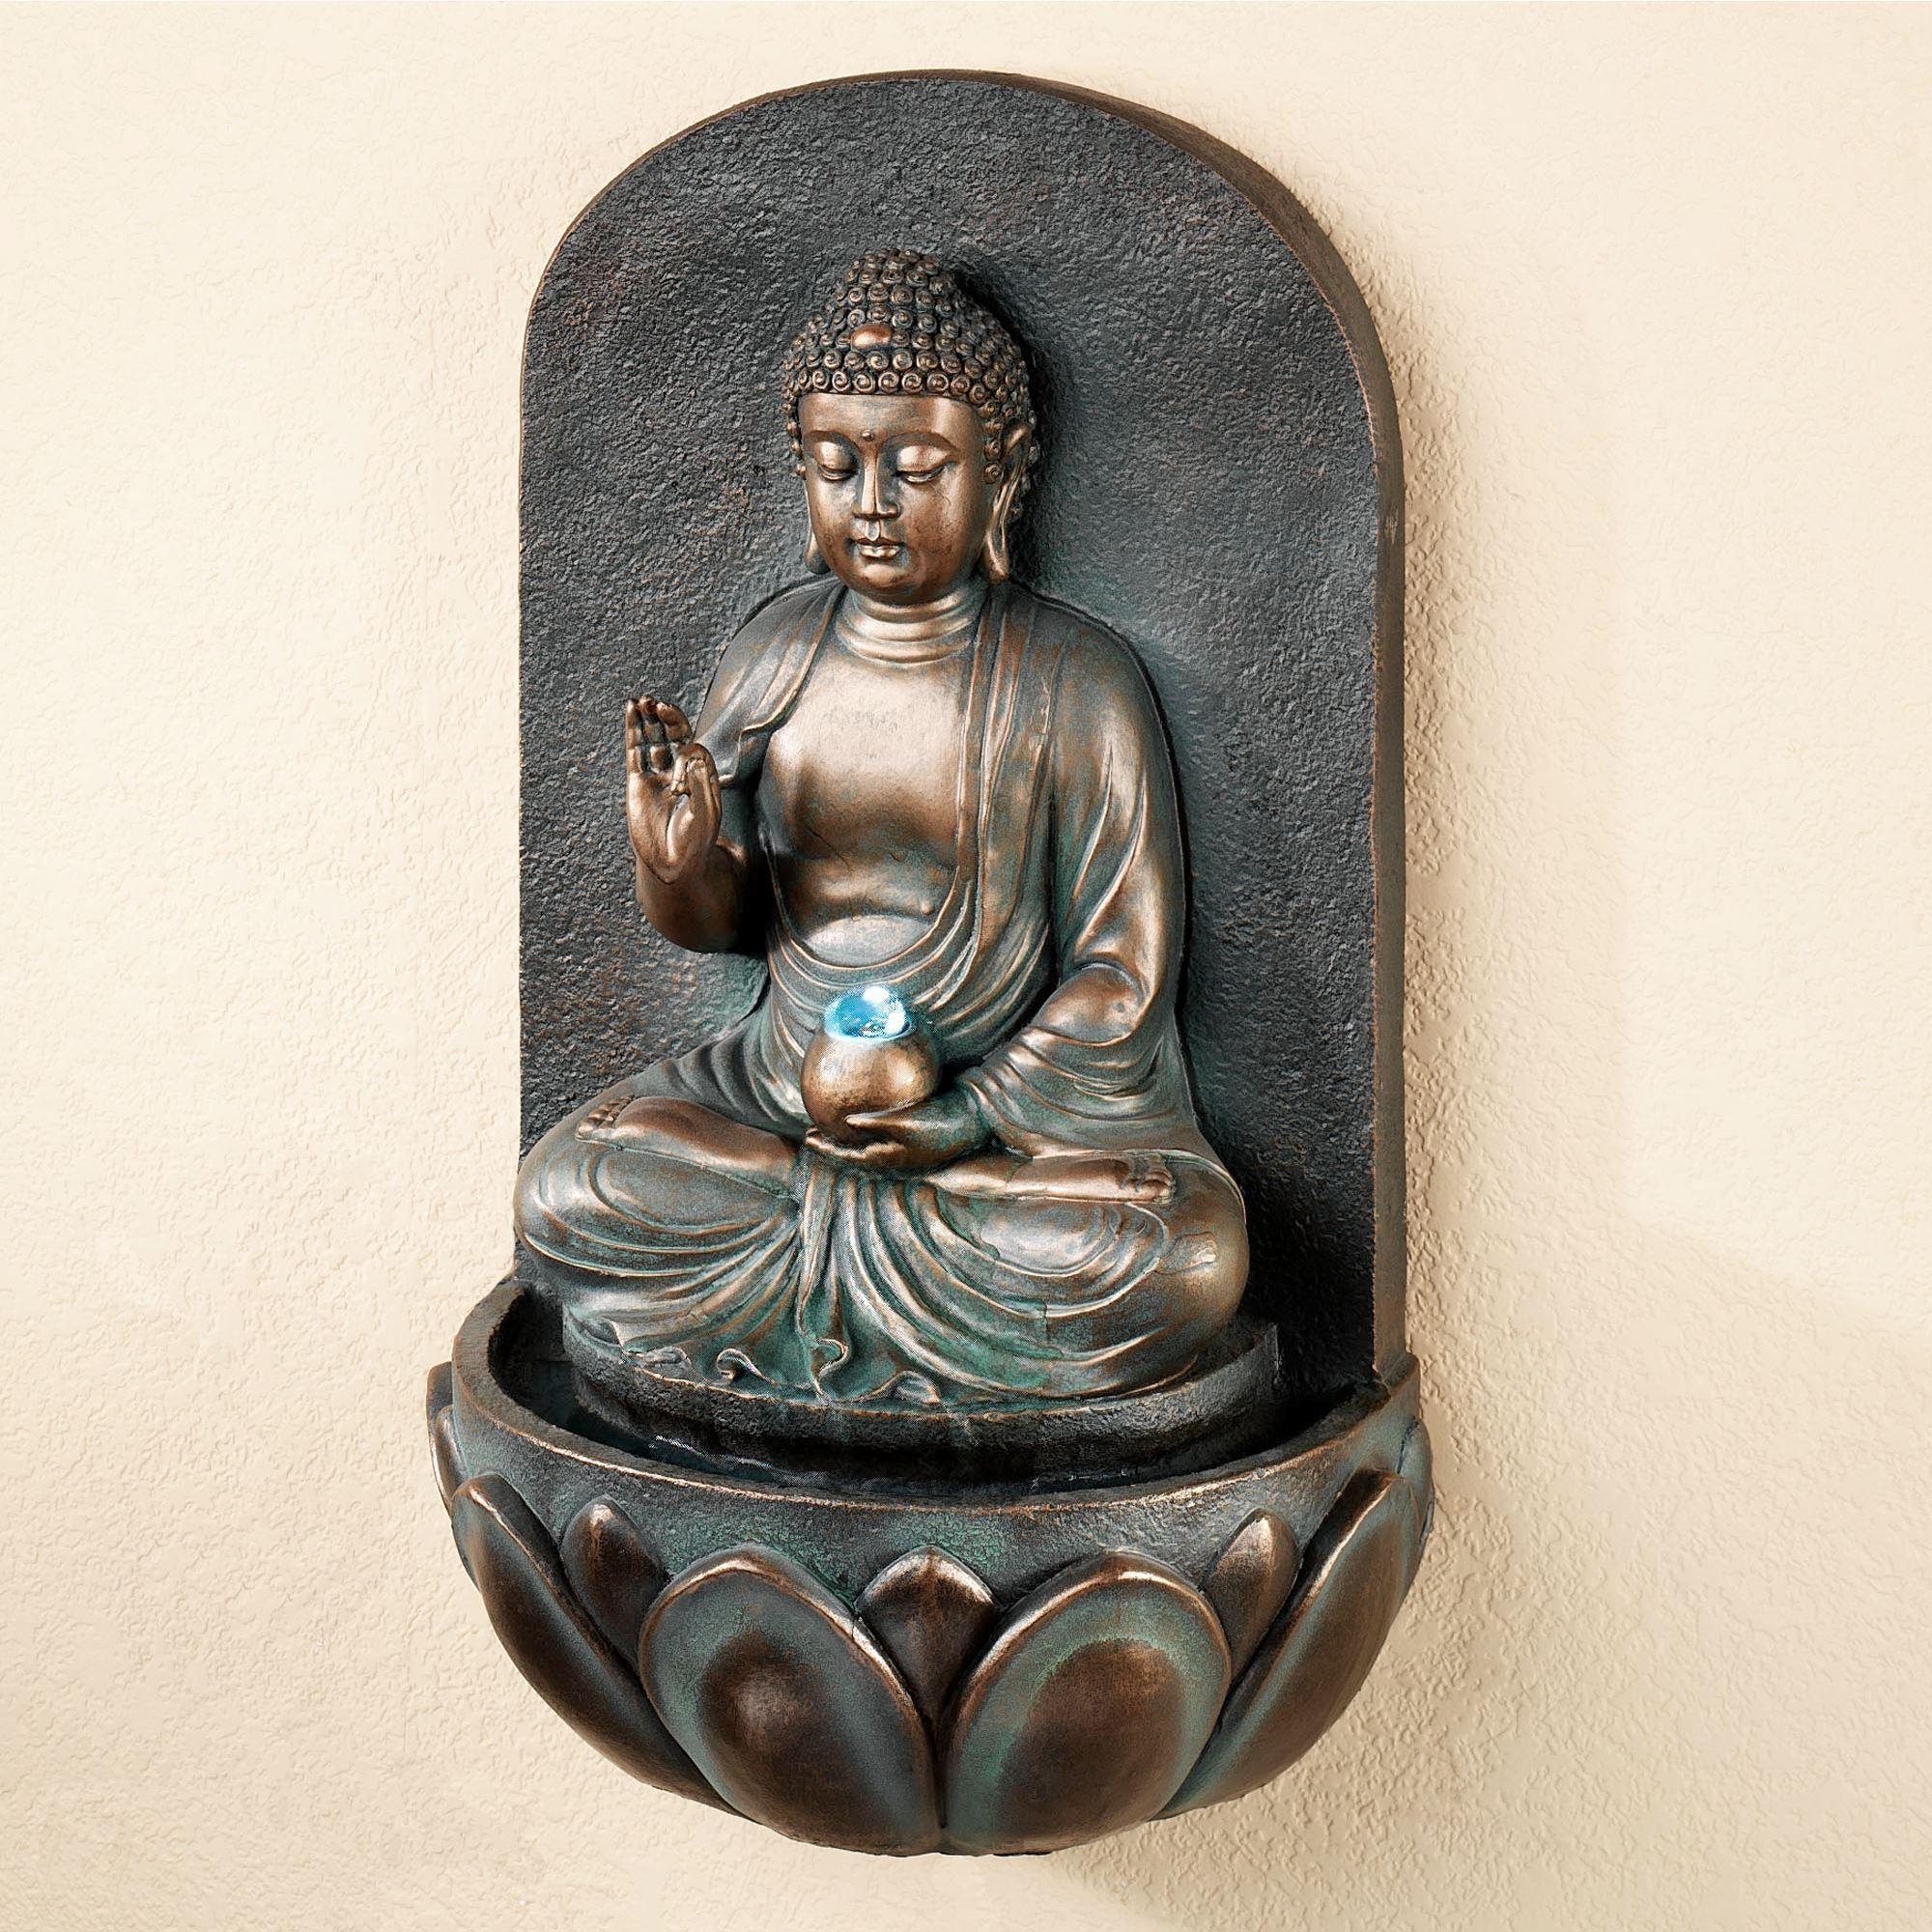 Reflecting Buddha Indoor Outdoor Wall Water Fountain Intended For Outdoor Buddha Wall Art (Image 12 of 20)